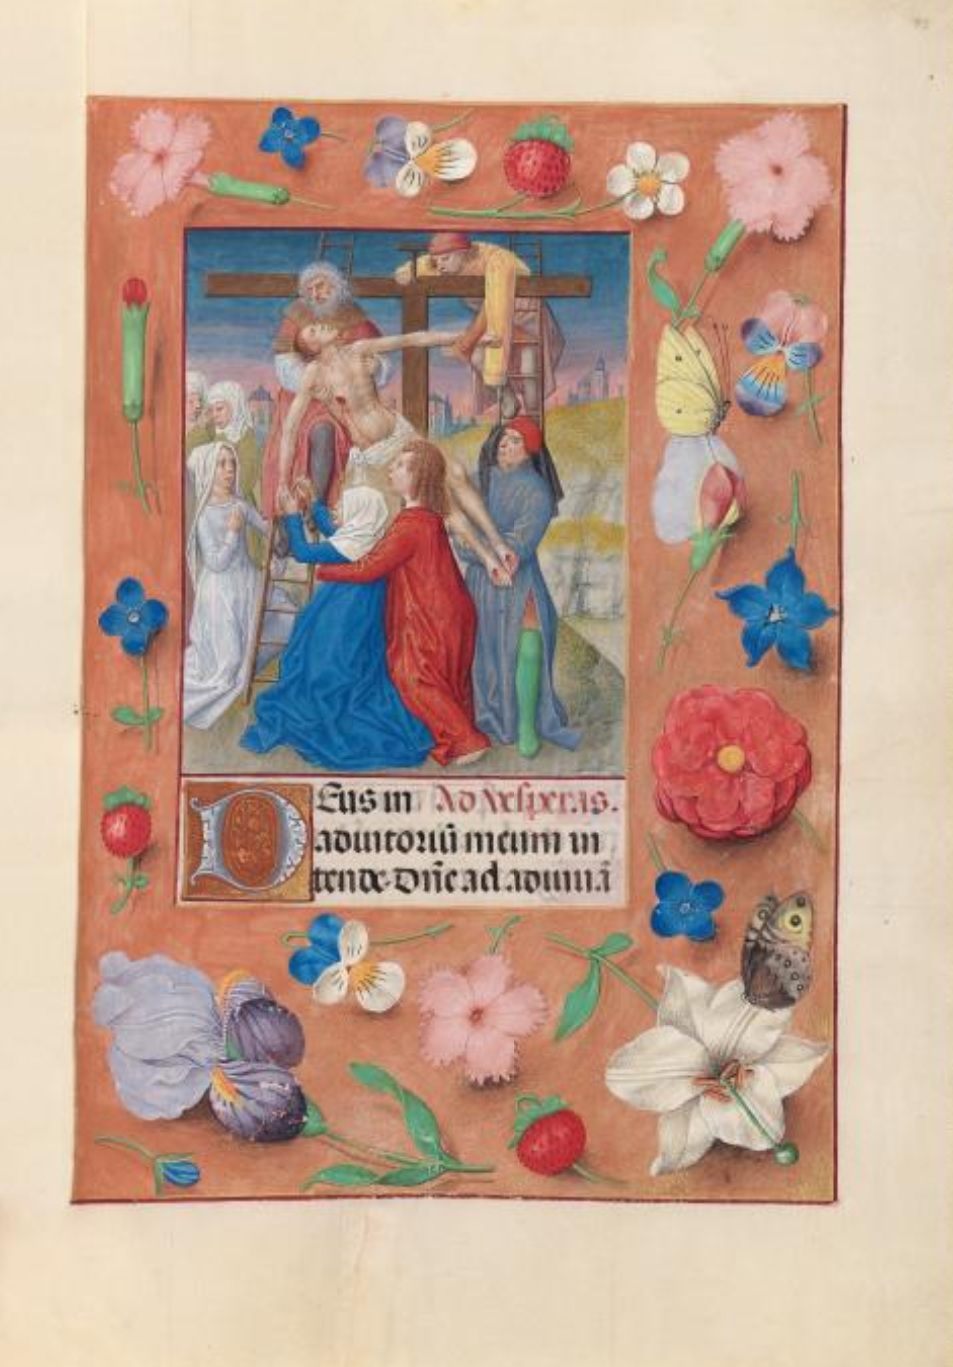 1500 ca Master of the First Prayerbook of Maximillian Hours of Queen Isabella the Catholic, Cleveland Museum of Arts, Fol. 73r, Descente de Croix